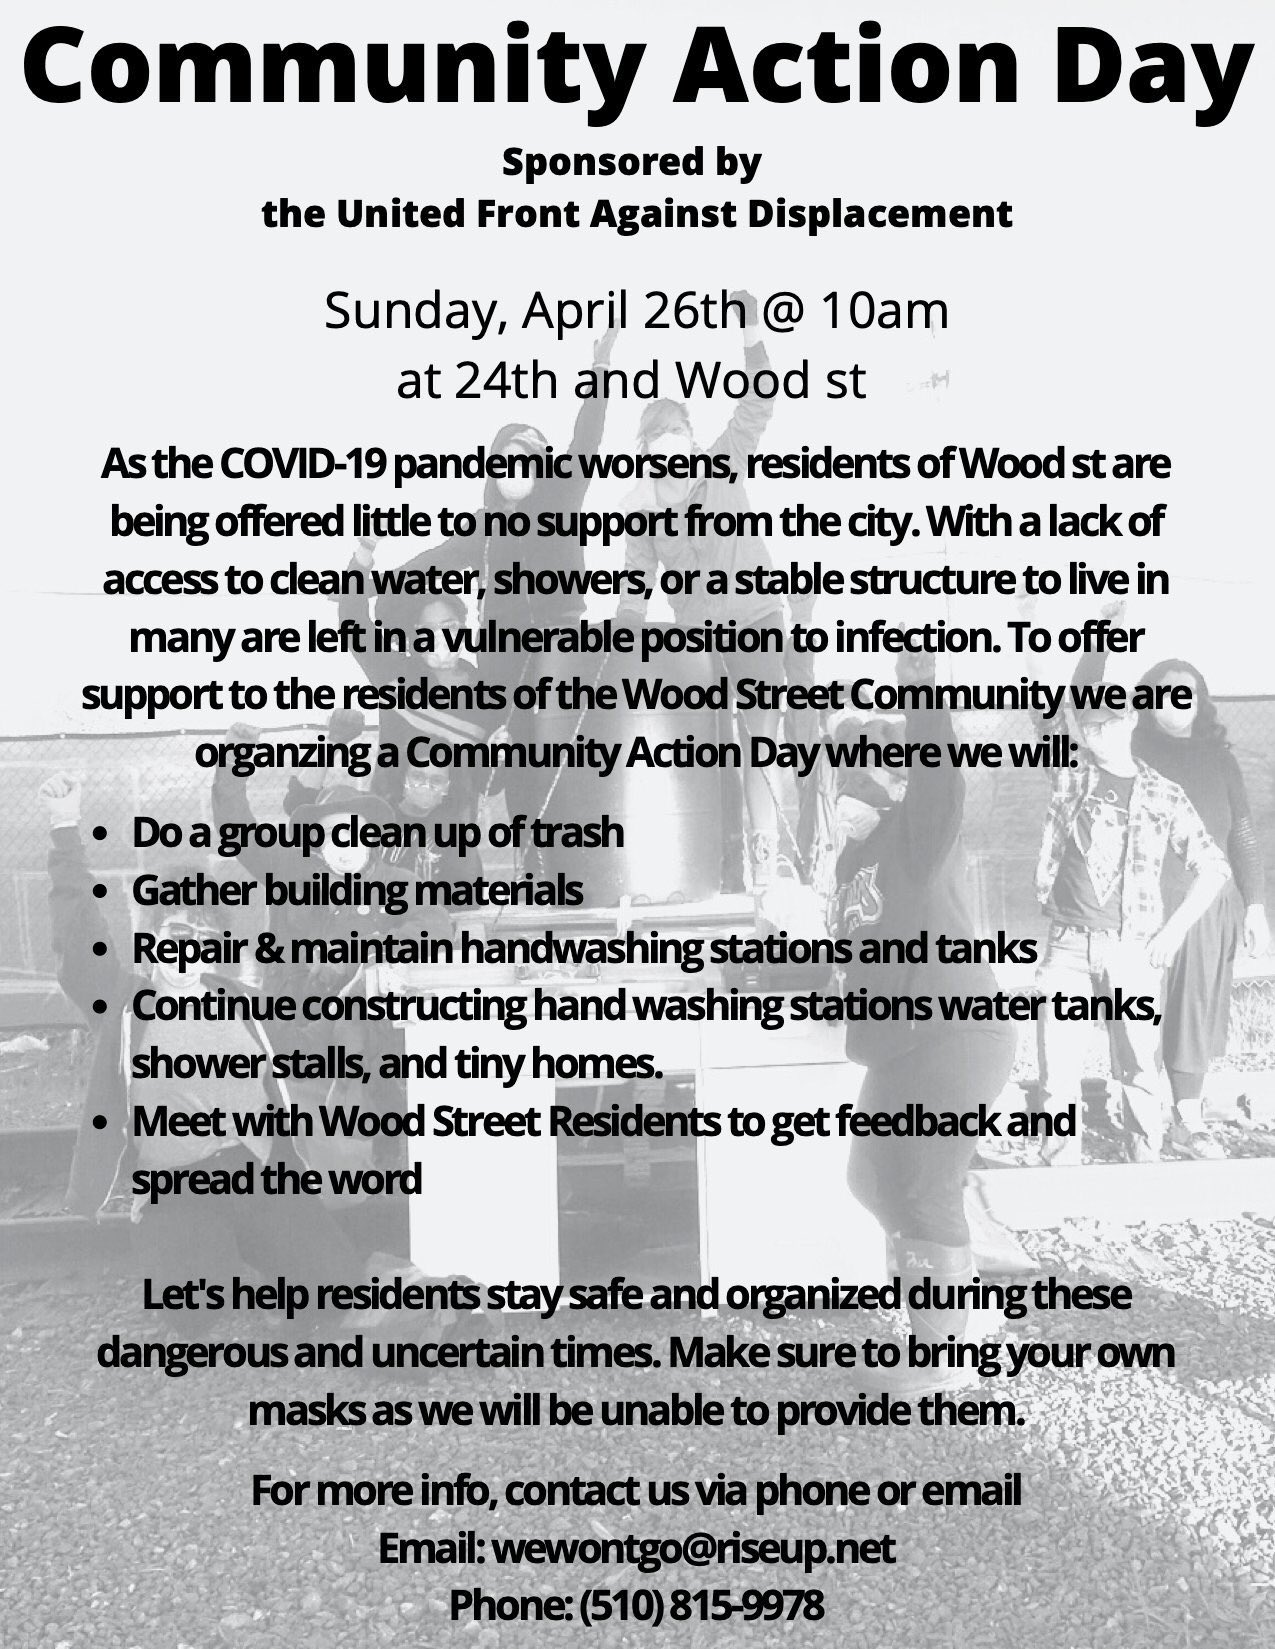 Wood Street Community Action Day